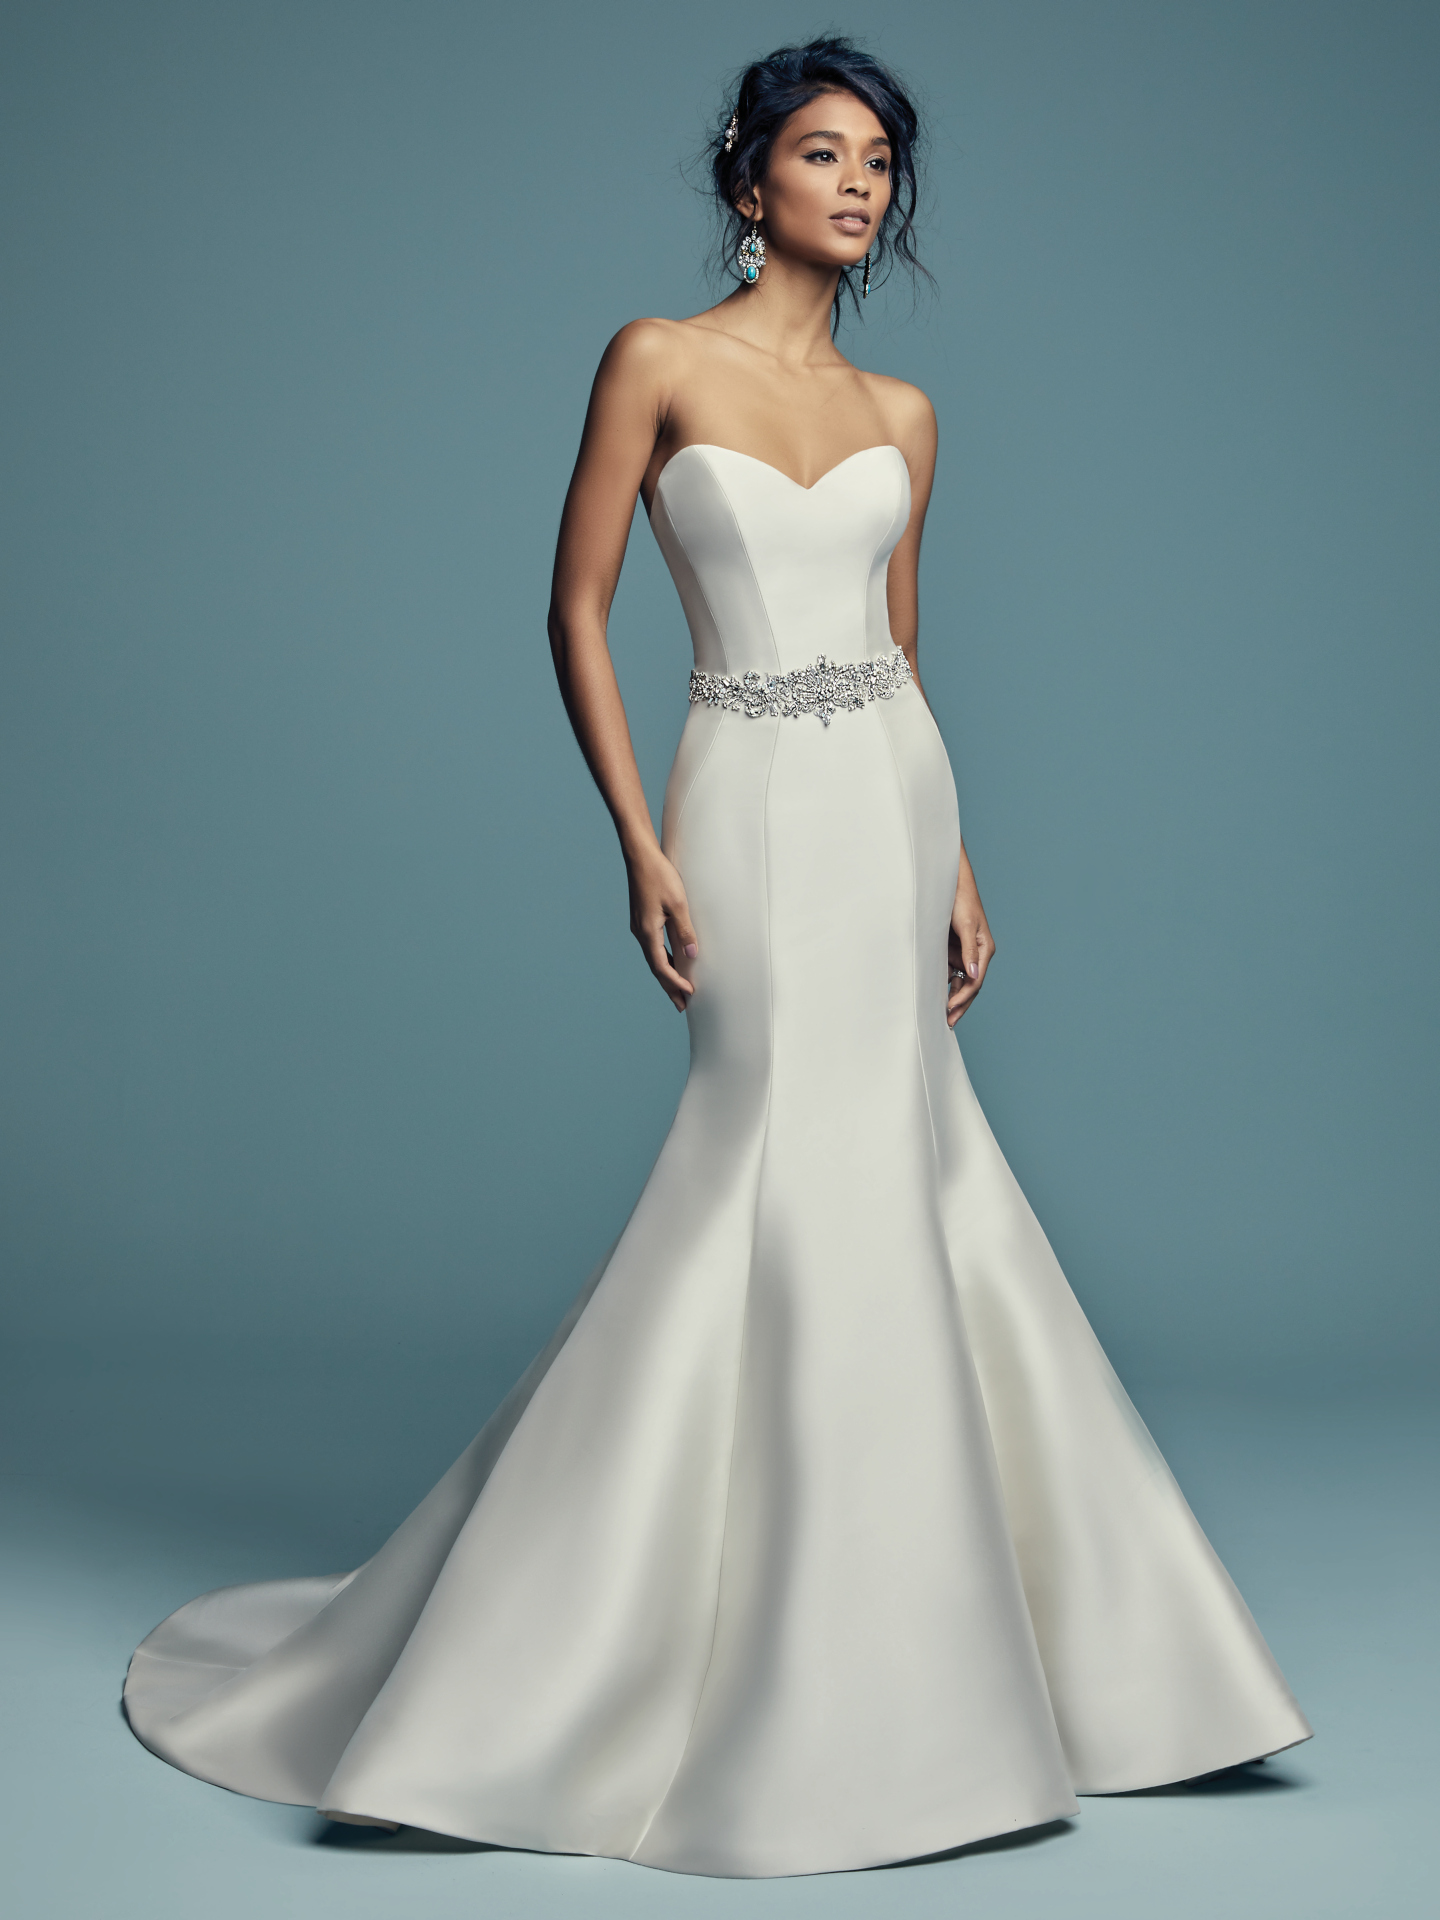 Wedding Gowns that Look Great in Photos - Cassidy wedding dress by Maggie Sottero